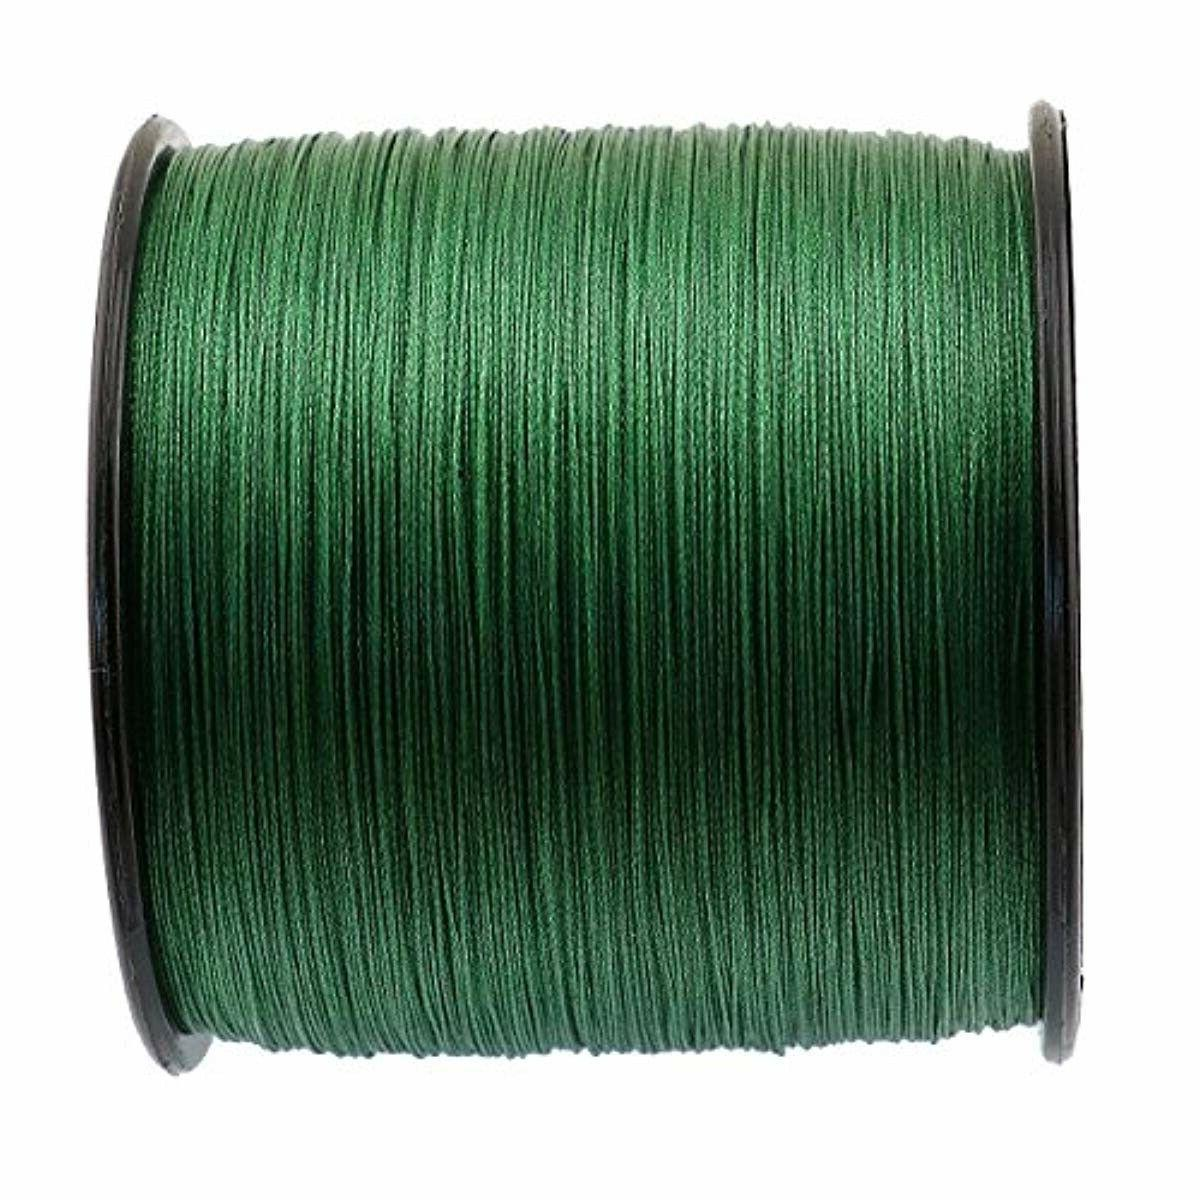 Ashconfish Braided Strands Super Strong Wire